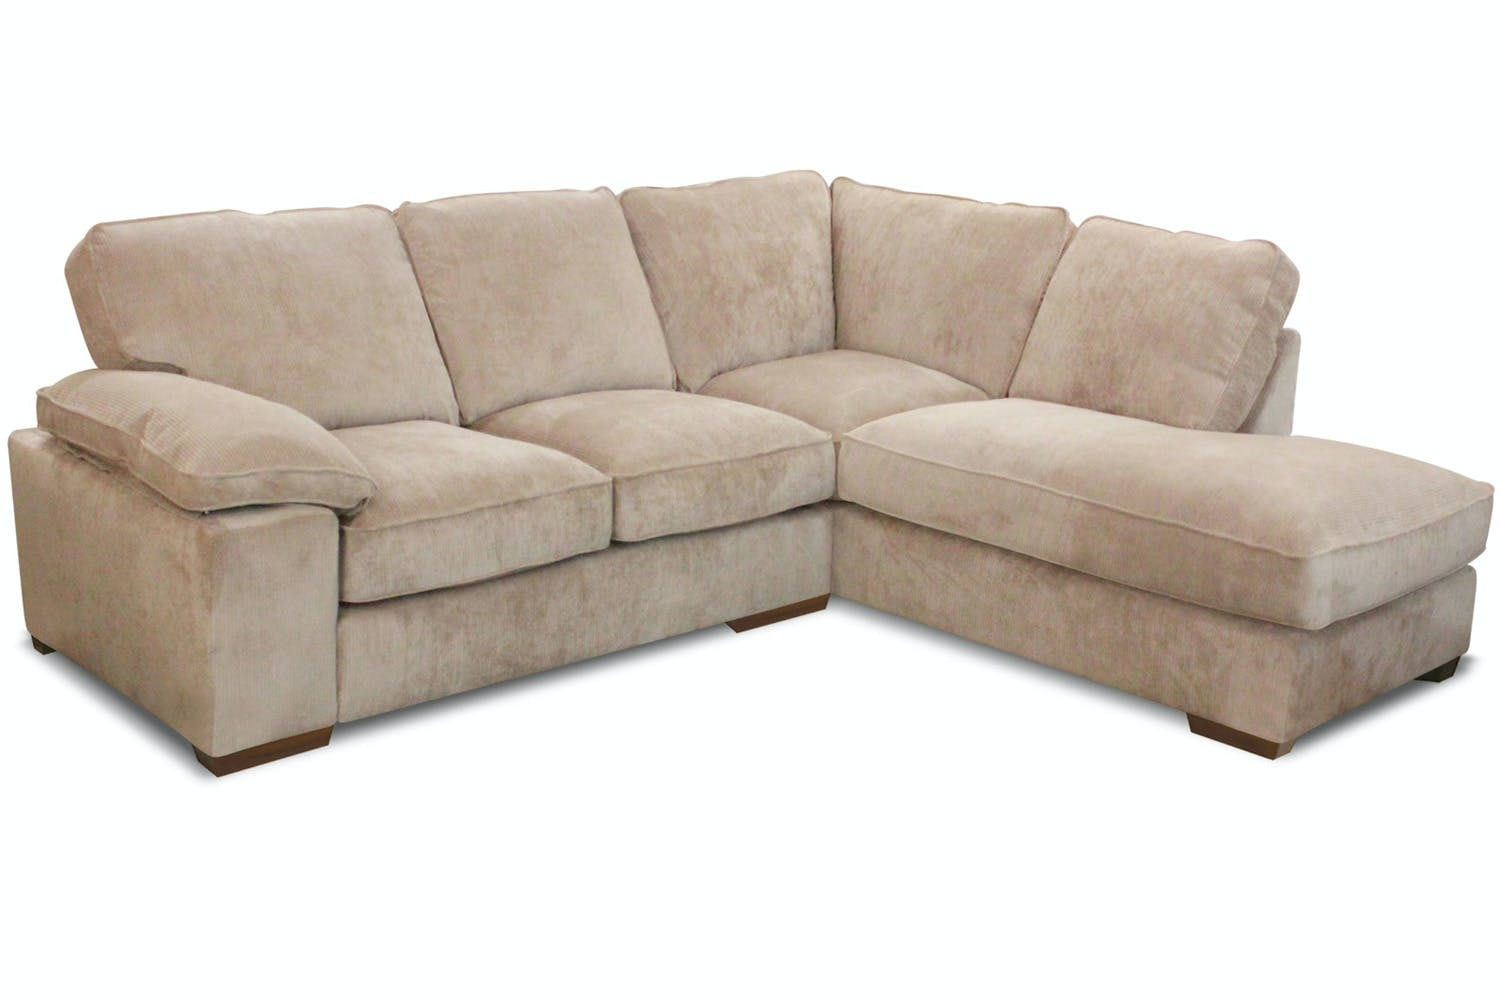 Utah corner sofa with sofa bed harvey norman harvey Corner couch sofa bed